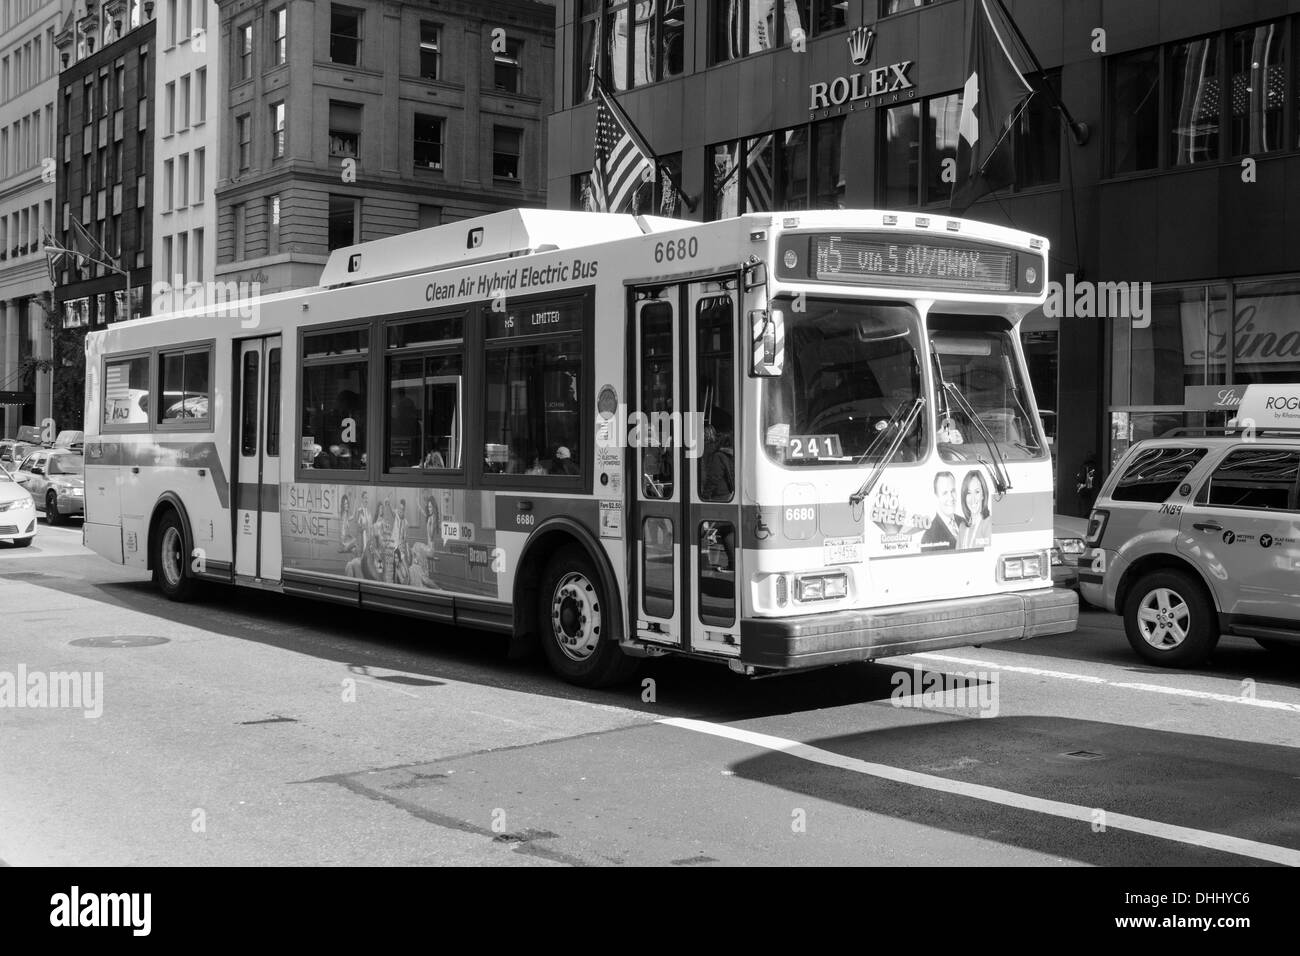 Clean Air Hybrid Electric Bus, Manhattan, New York City, United States of America. - Stock Image